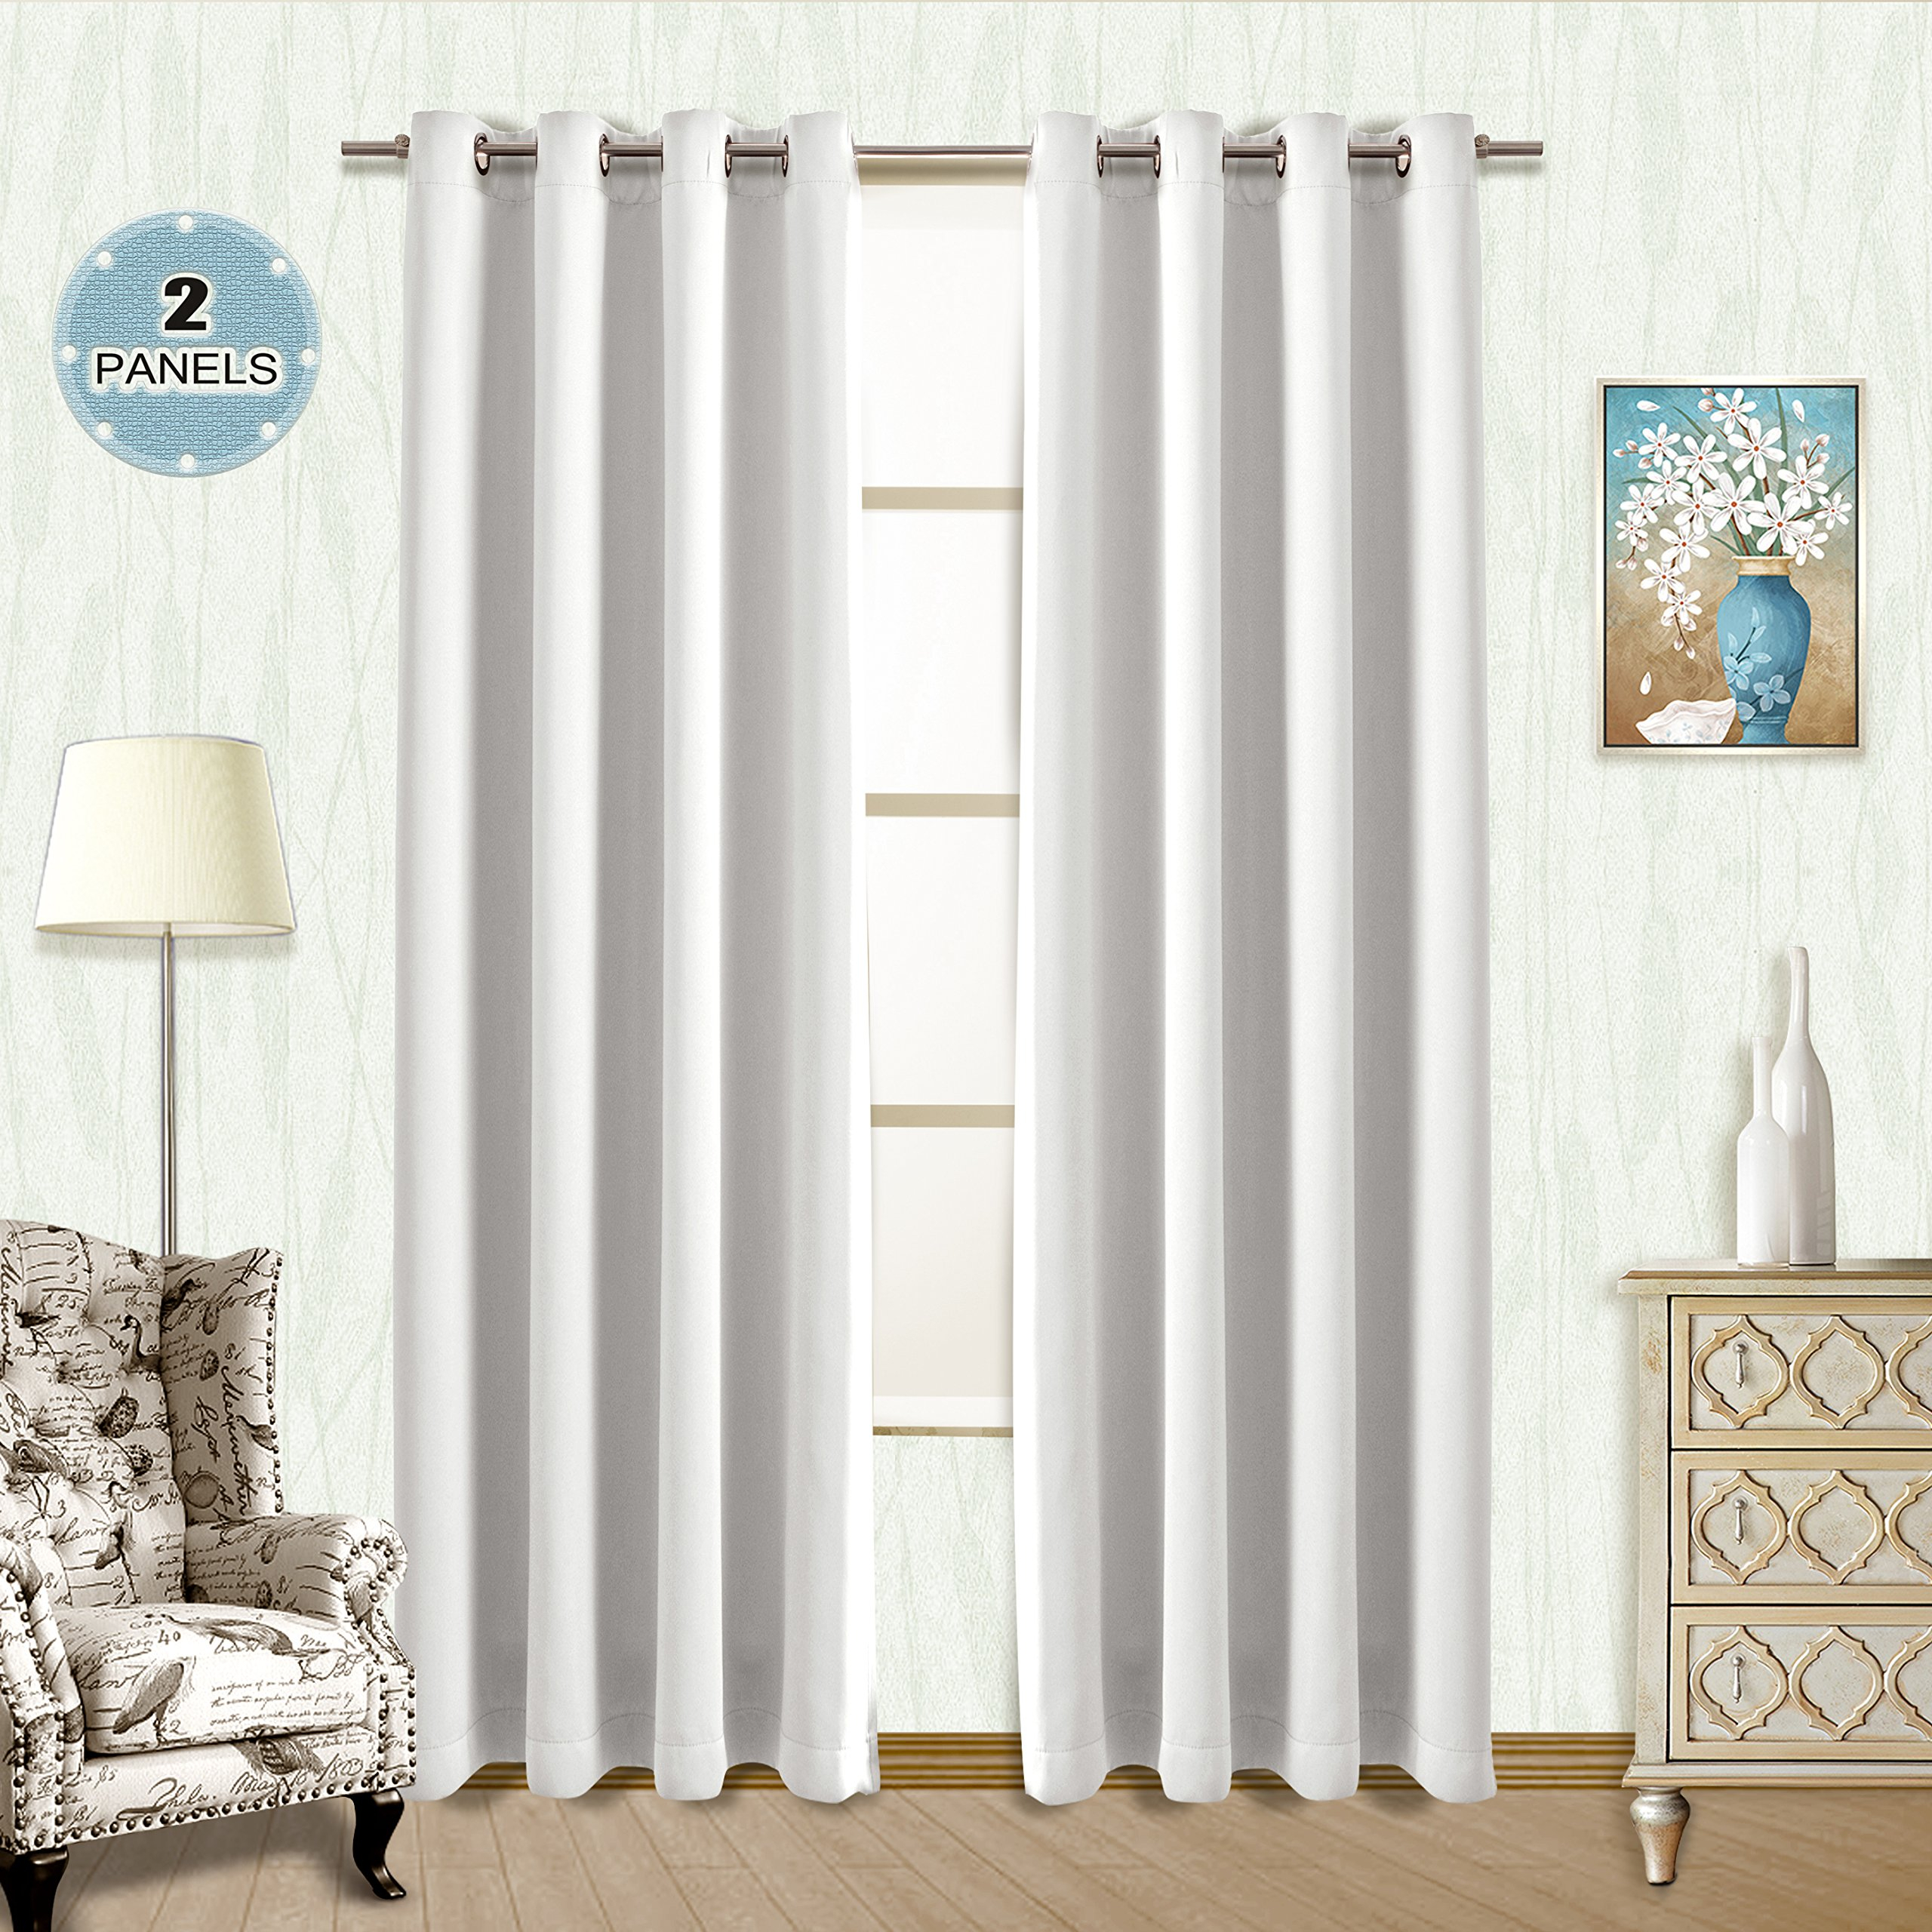 Cheap Blackout Curtains 84, Find Blackout Curtains 84 Deals Within Solid Insulated Thermal Blackout Long Length Curtain Panel Pairs (View 13 of 30)